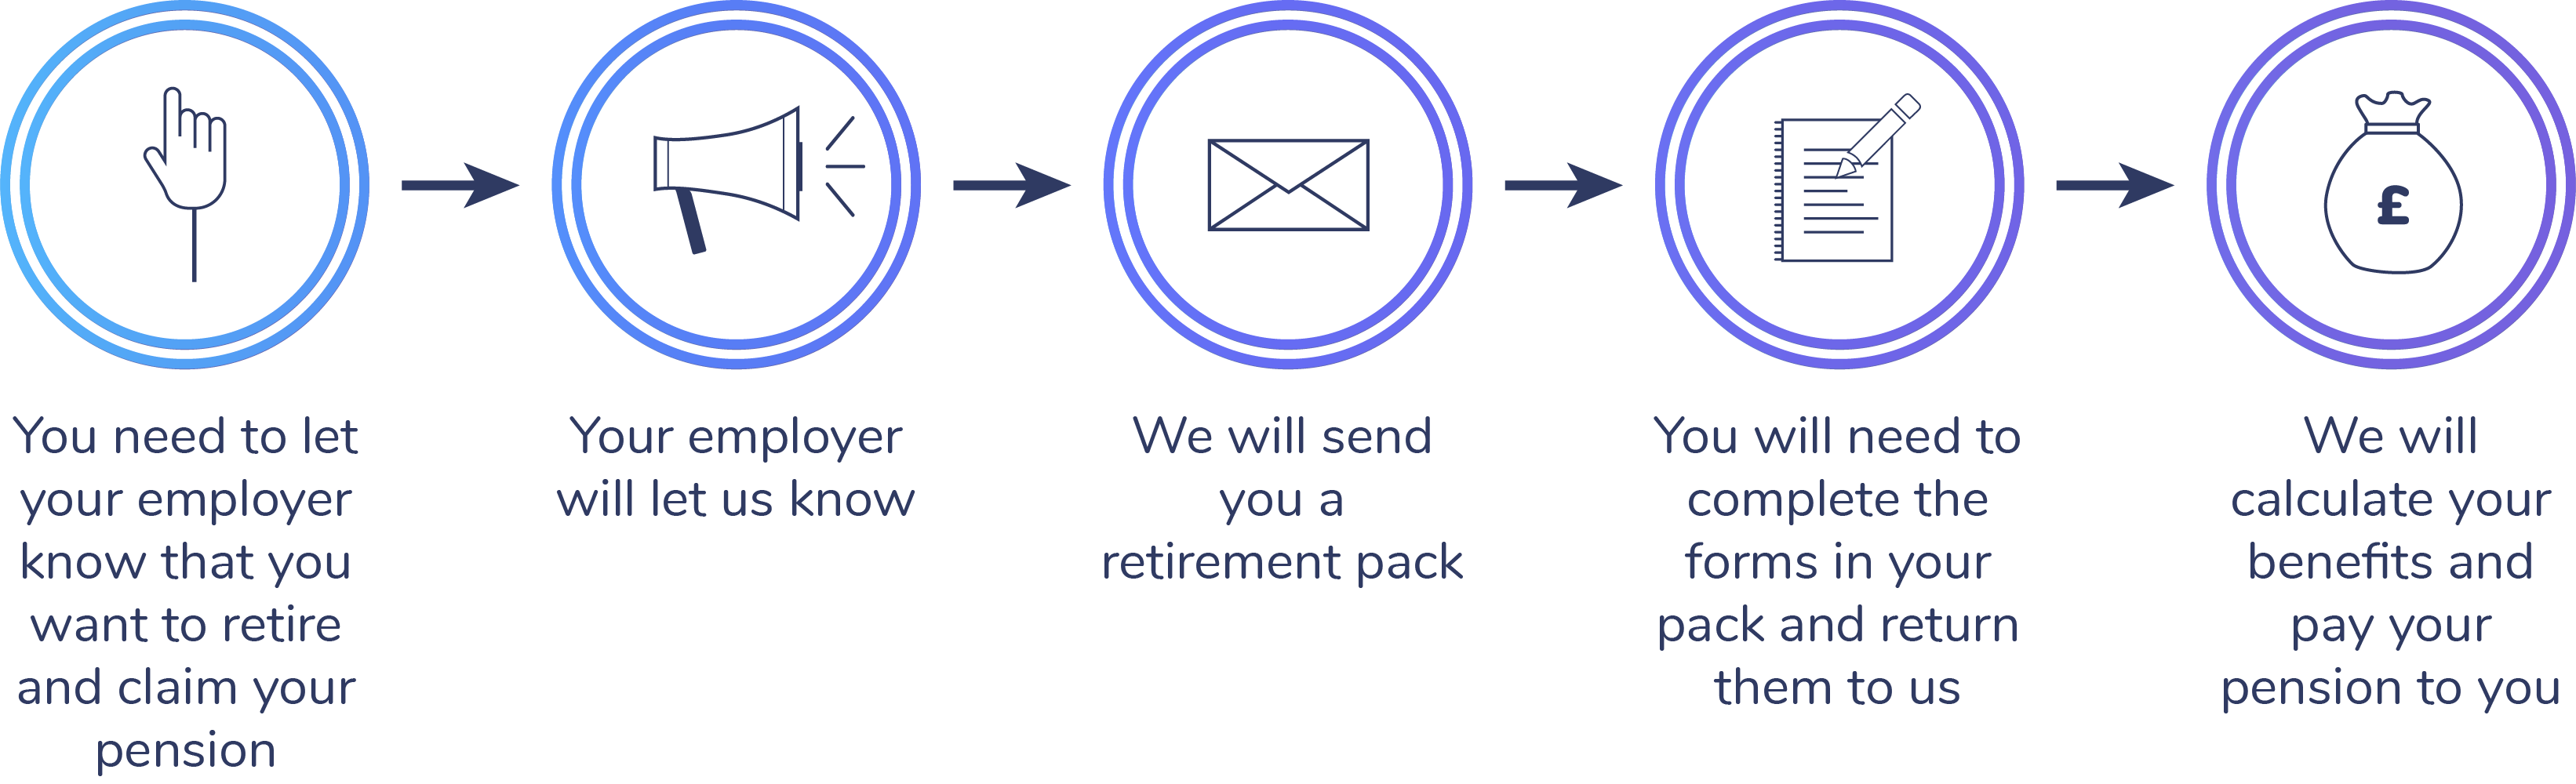 "Five step process displayed. Step one, ""you need to let your employer know that you want to retire and claim your pension"". Step two, ""your employer will let us know"". Step three, ""we will send you a retirement pack"". Step four, ""you will need to complete the forms in your pack and return them to us"". Step five, ""we will calculate your benefits and pay your pension to you""."